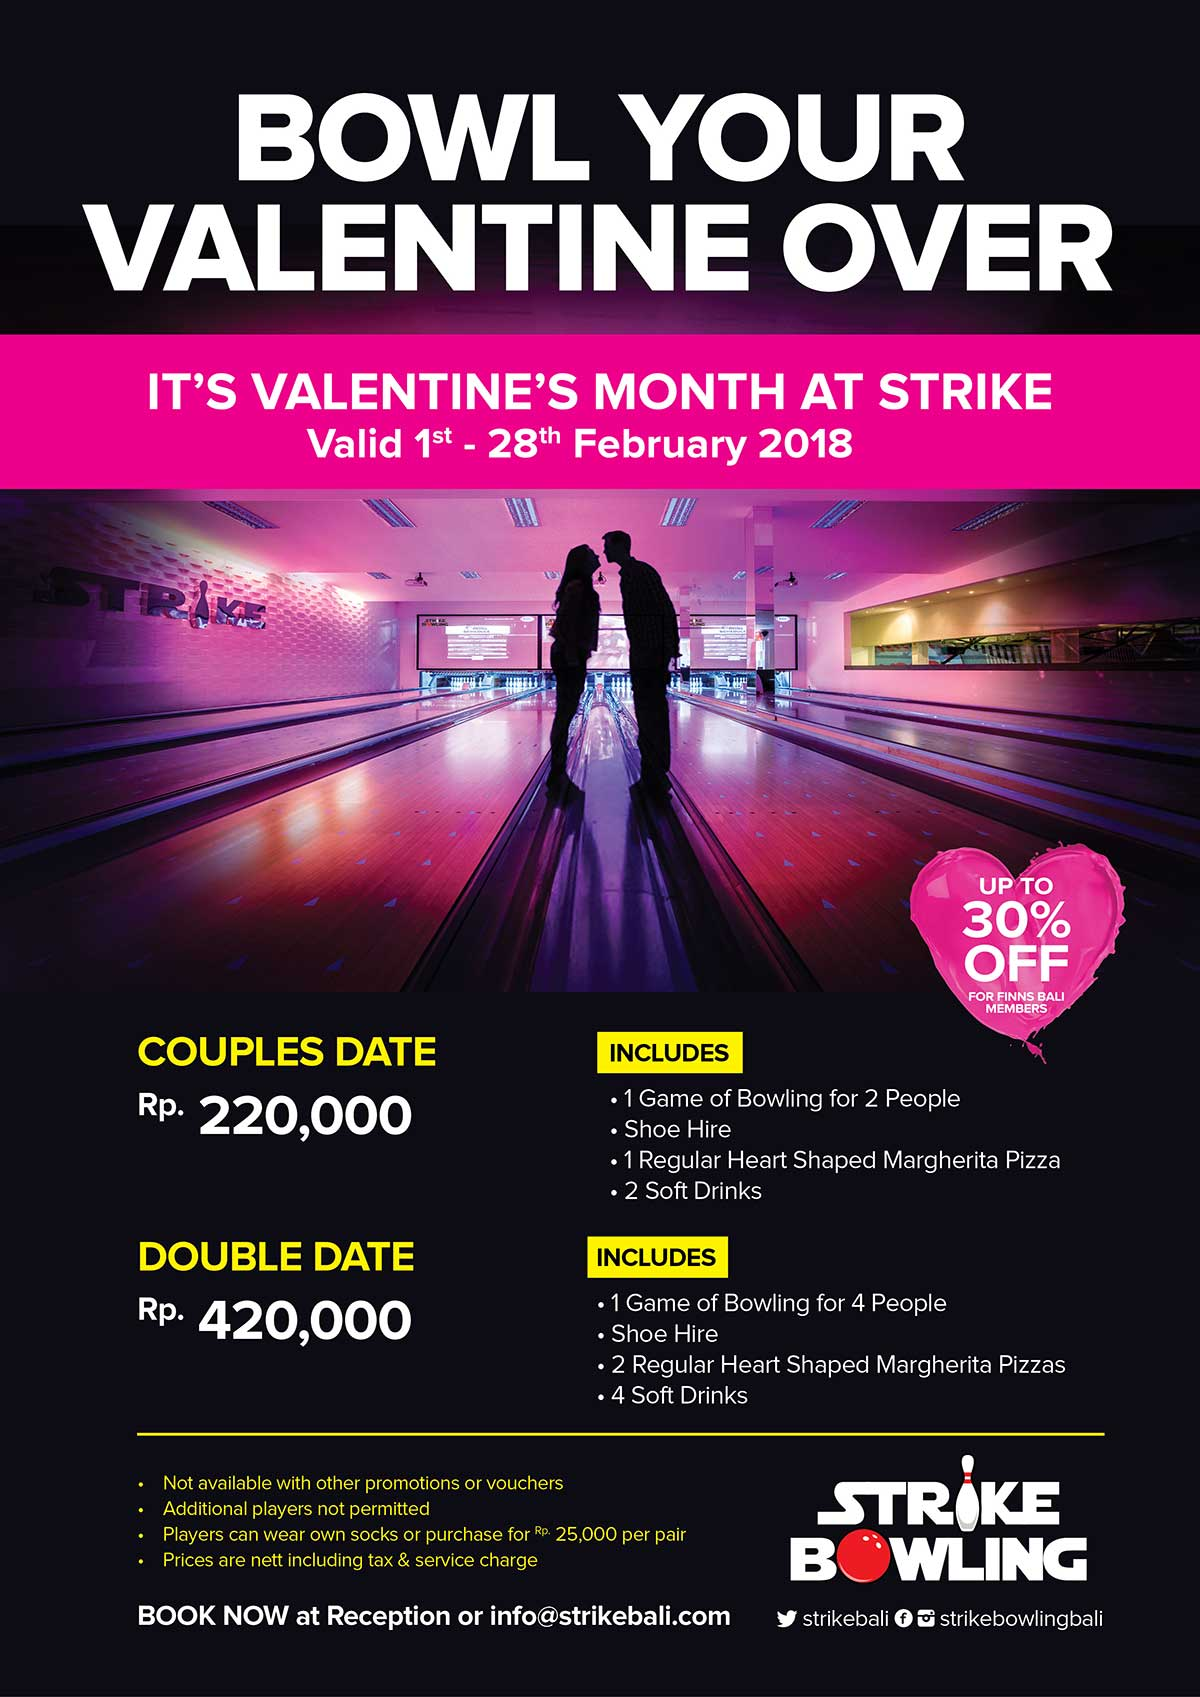 Bowl-Your-Valentine-Over